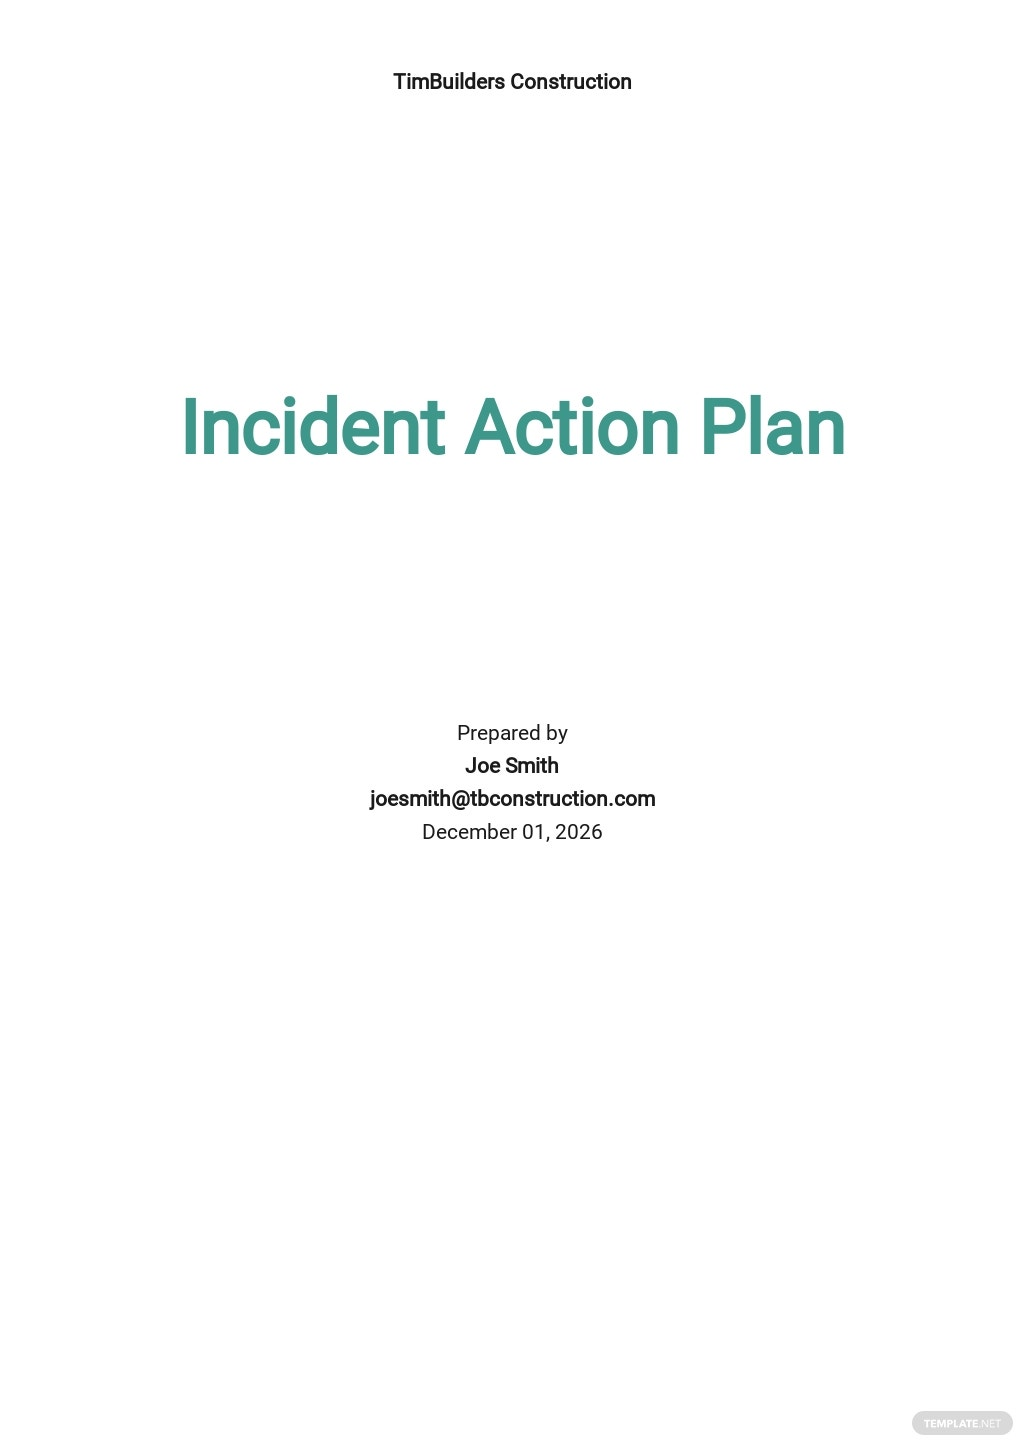 Incident Action Plan Template.jpe